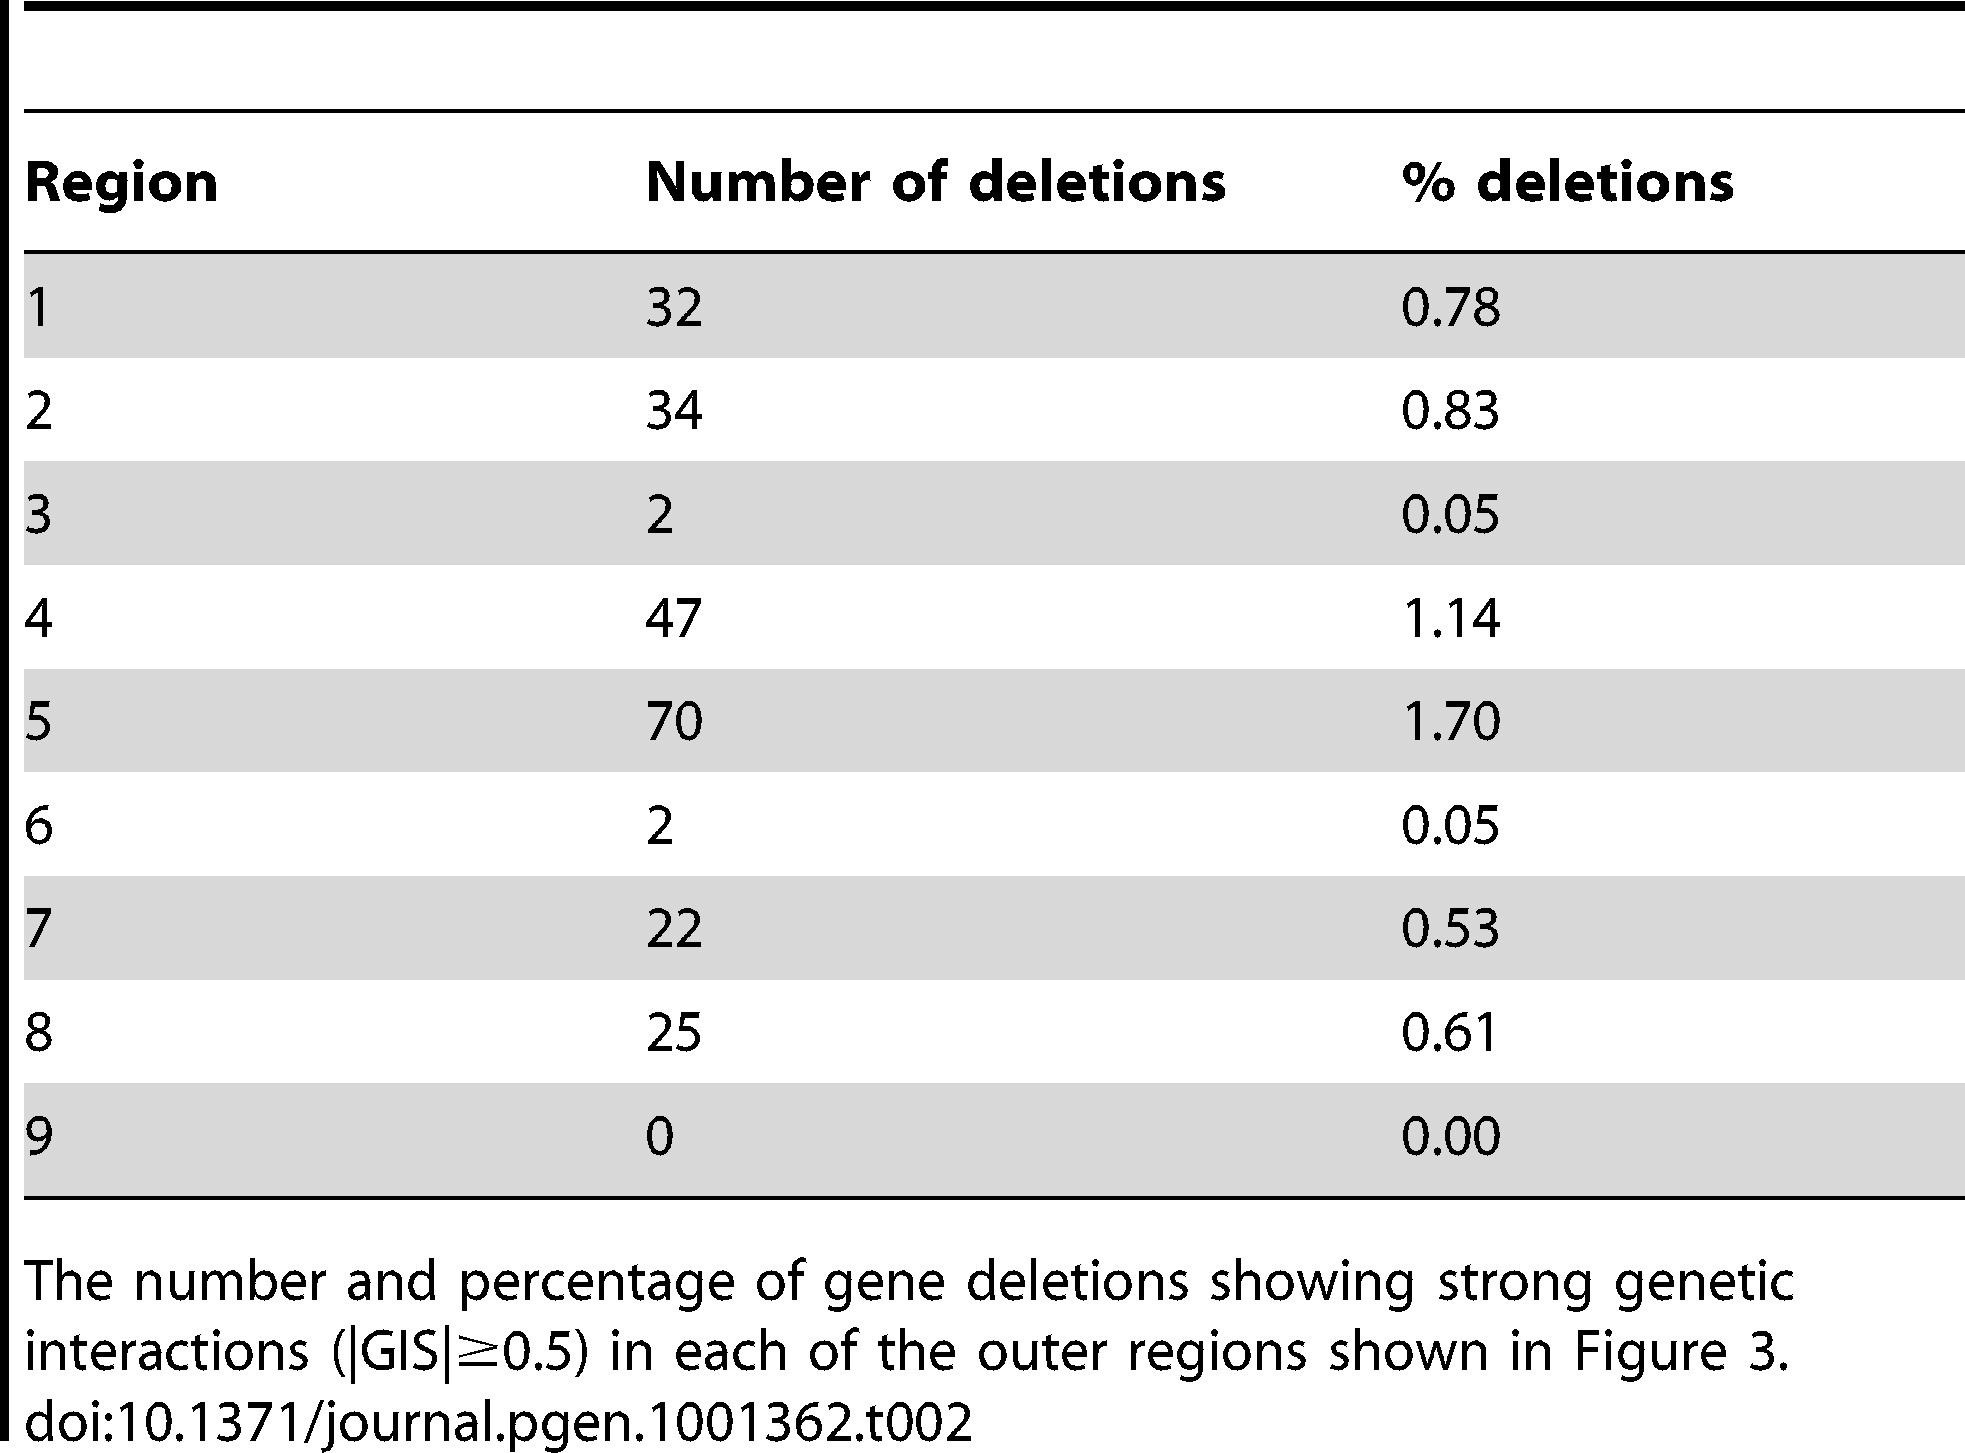 "Number and proportion of deletions in each of the nine regions shown in <em class=""ref"">Figure 3</em>."